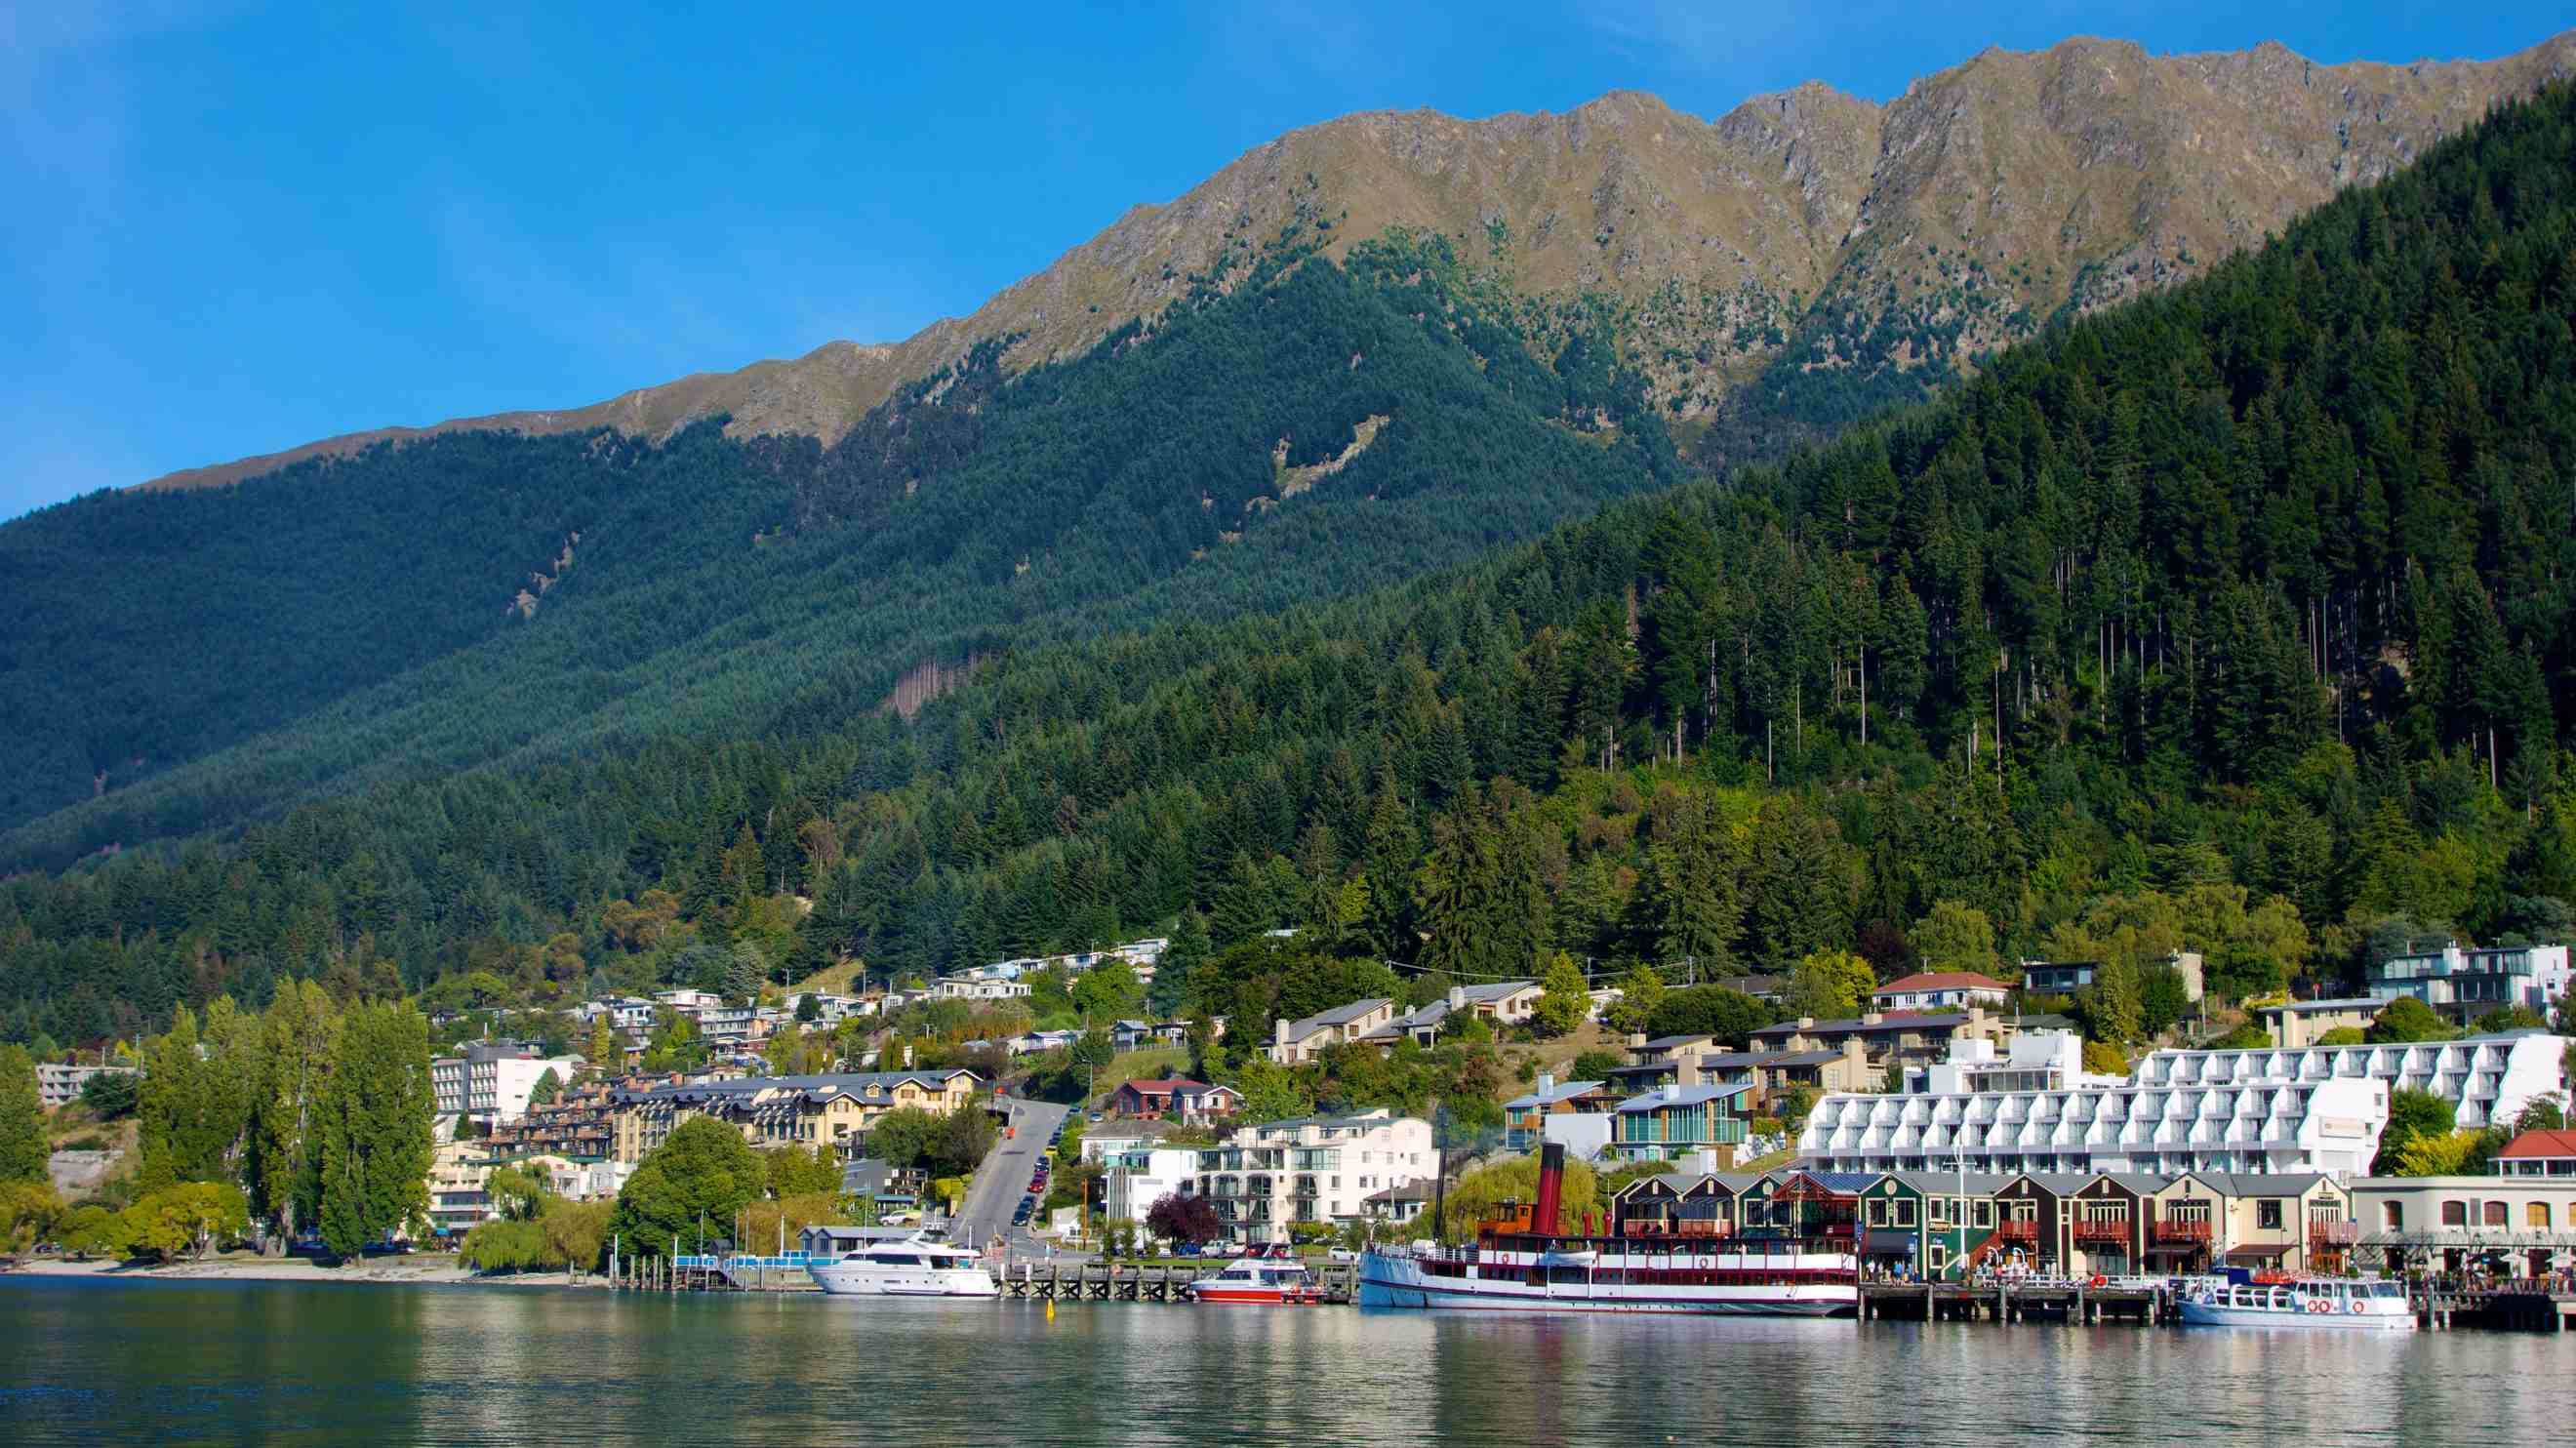 Top 10 Hotels Near Queenstown Intl Airport Zqn For 2018 Expedia Filter Udara Std Kc Nex